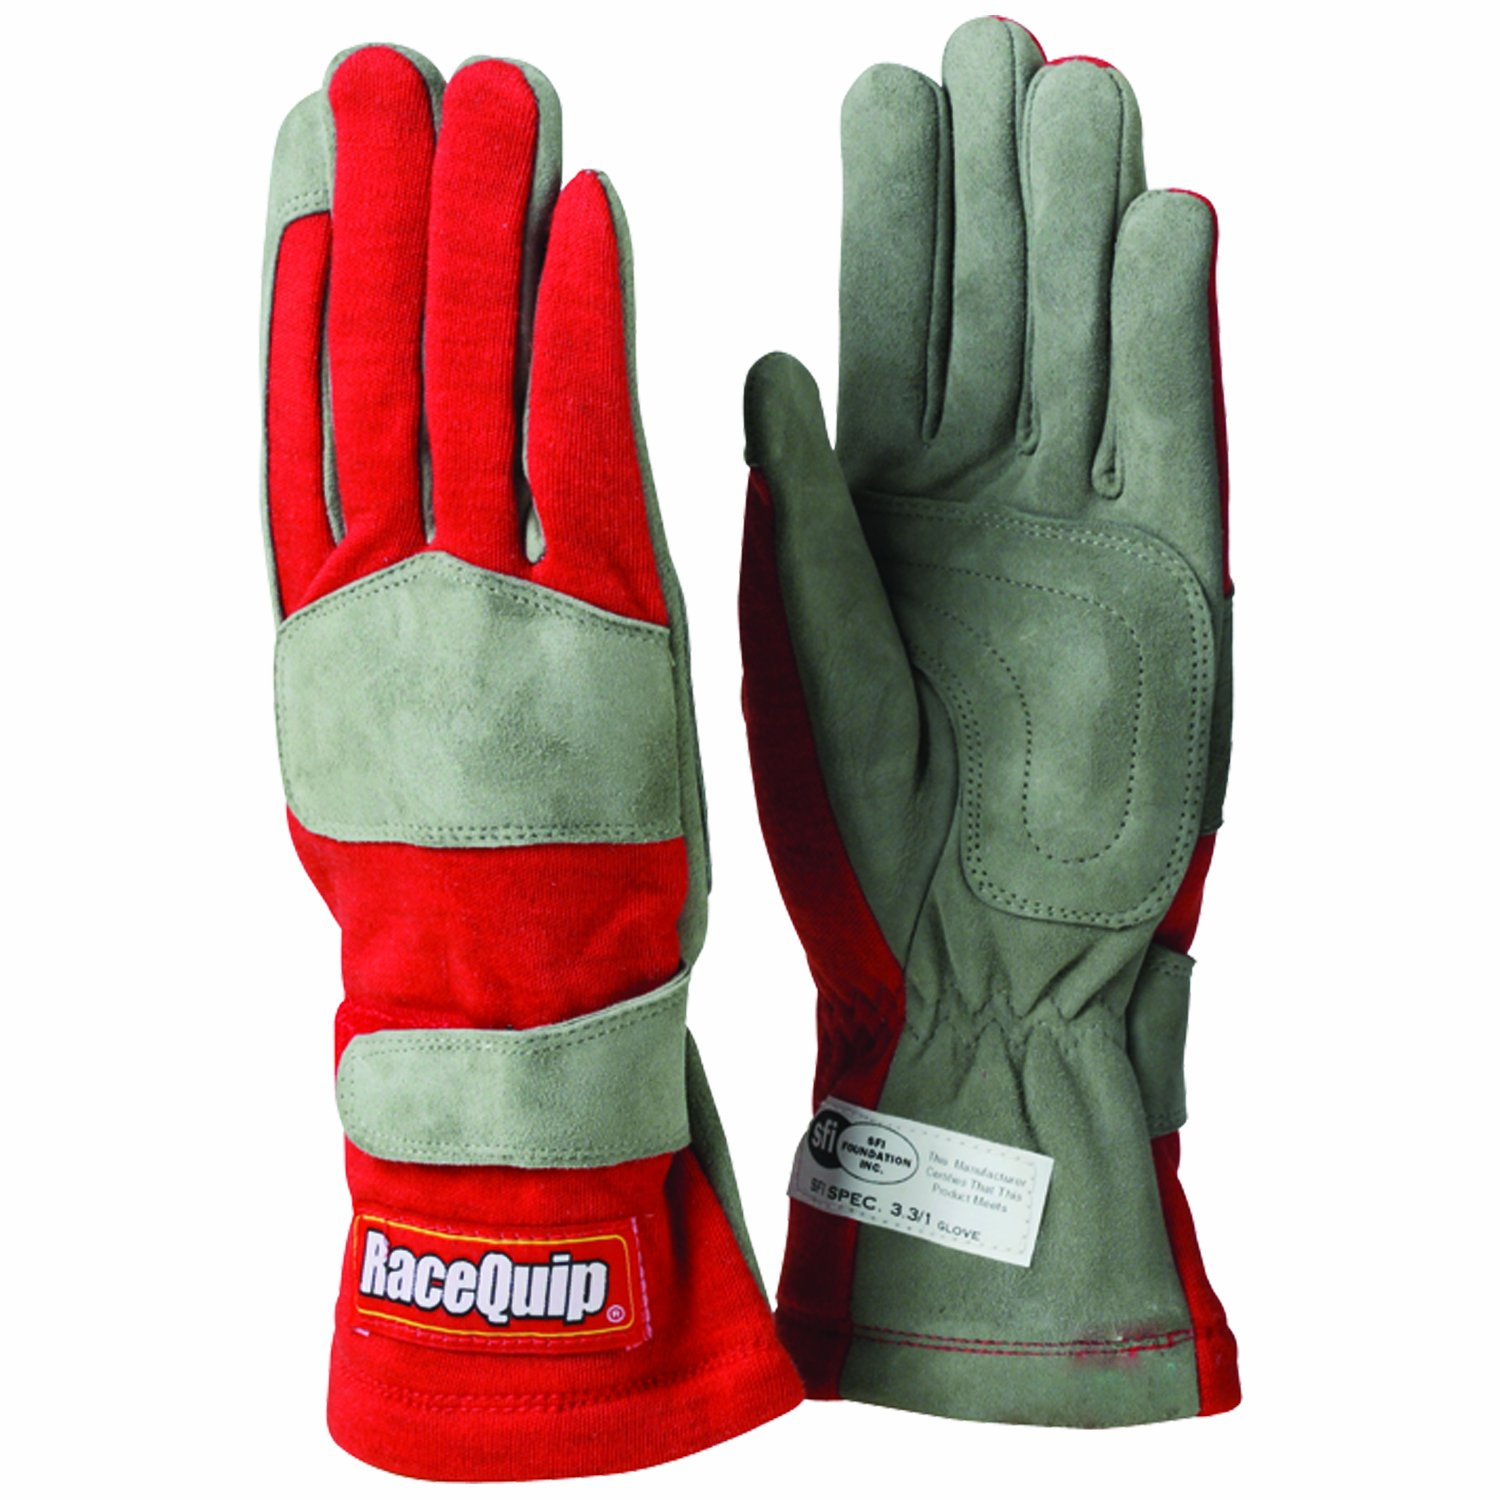 RaceQuip 351015 351 Series Large Red SFI 3.3//1 One Layer Racing Gloves